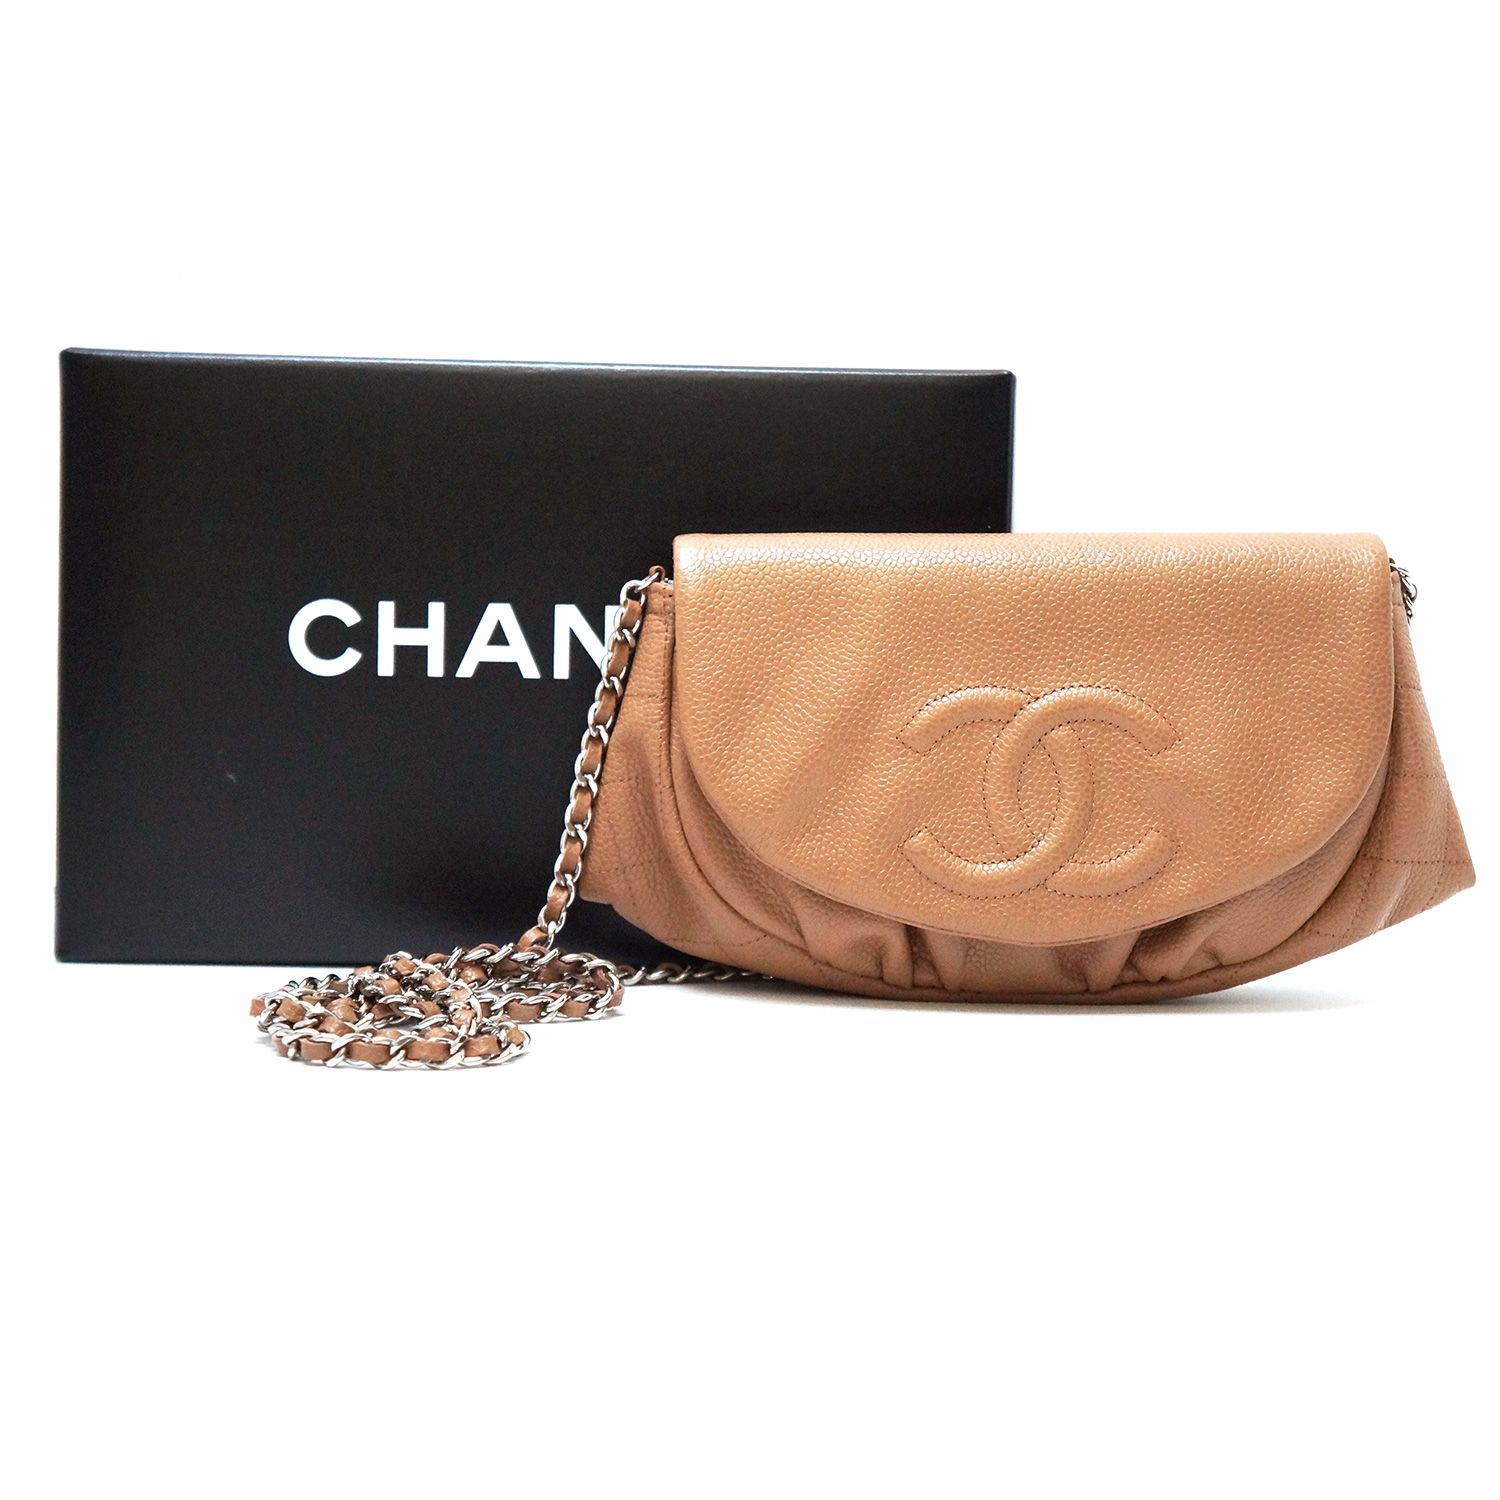 8090baa129e5 Chanel Half Moon Wallet-on-a-Chain WOC Taupe Caviar Leather ...